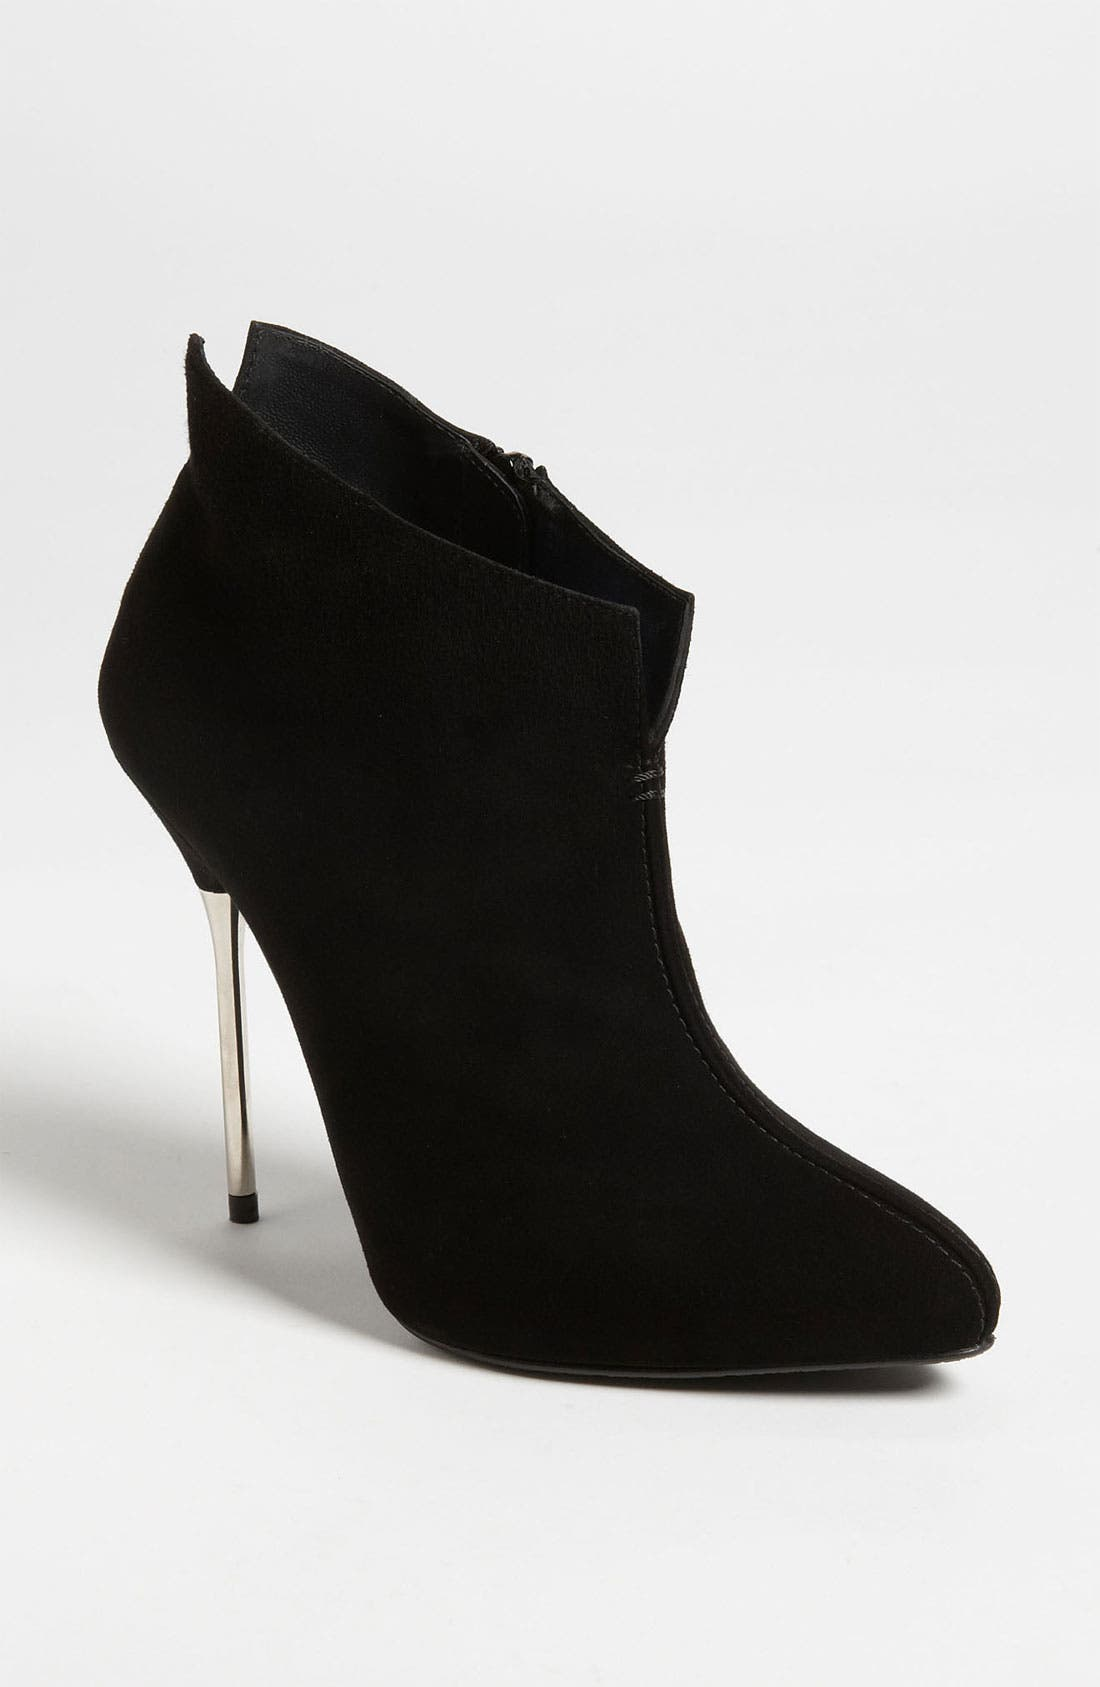 Alternate Image 1 Selected - Stuart Weitzman 'Middle' Bootie